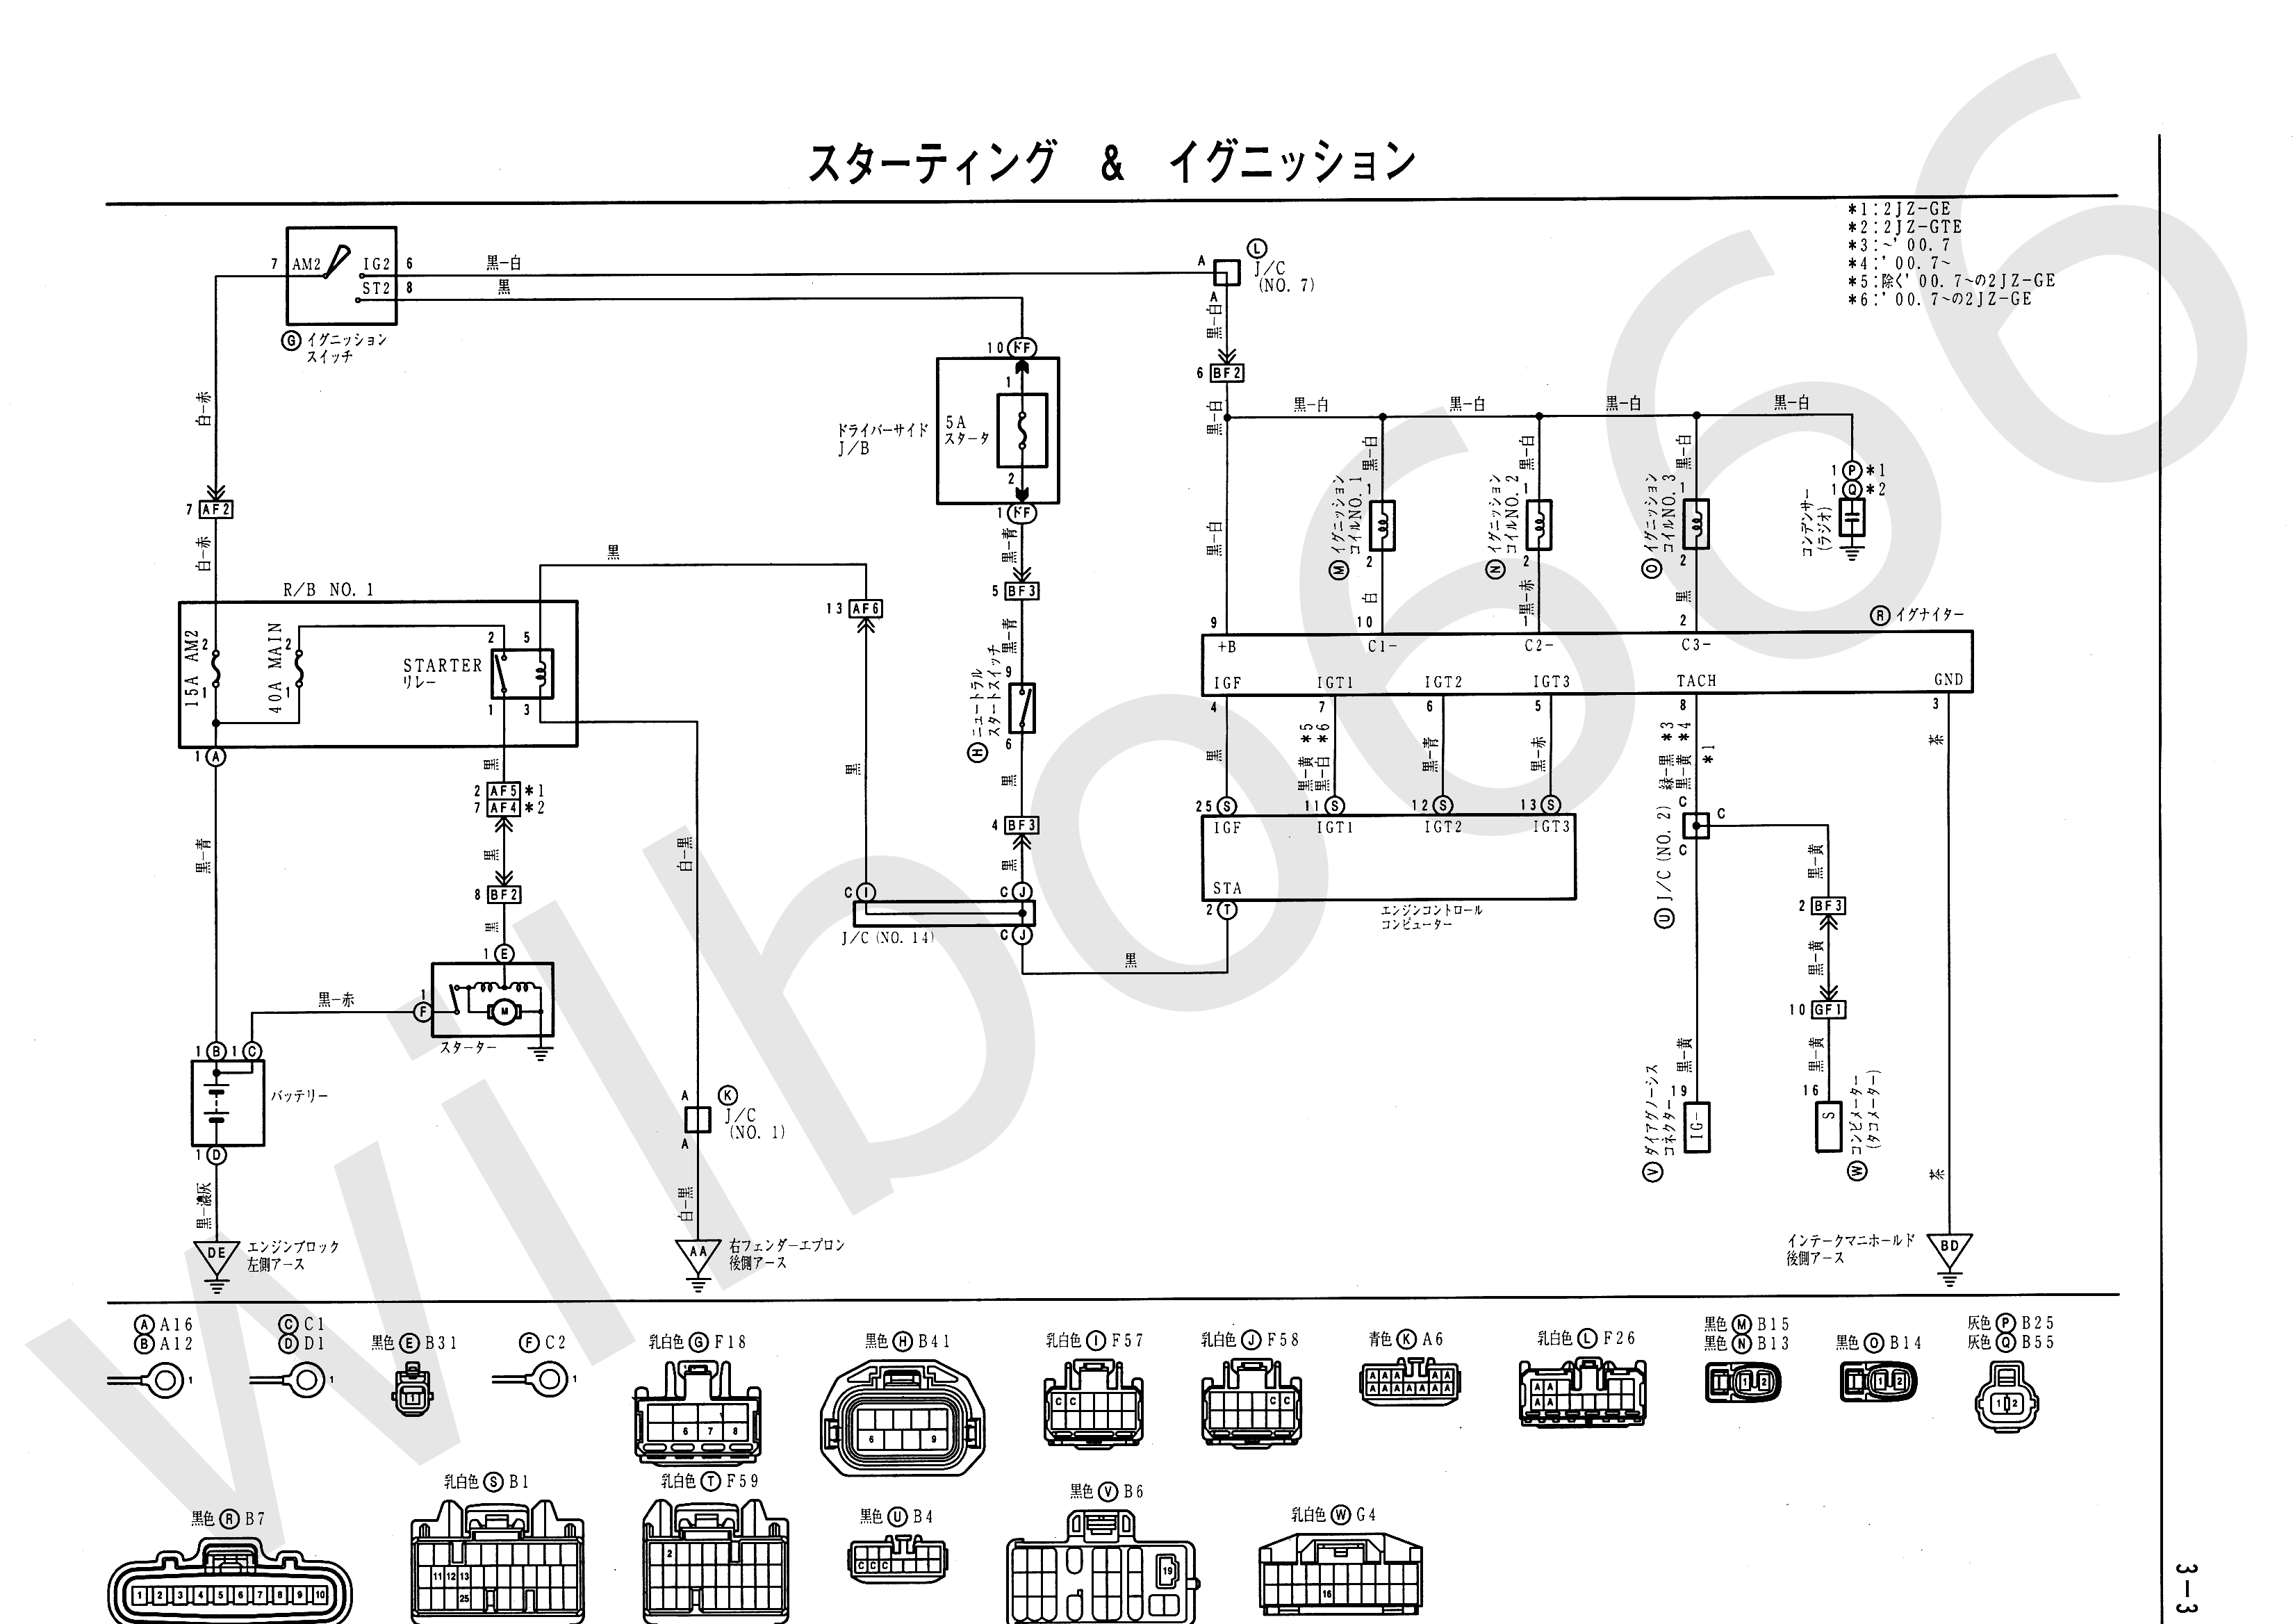 chrysler alternator wiring diagram 2jz alternator wiring diagram 2jz wiring diagrams alternator wiring diagram jzs161%20electrical%20wiring%